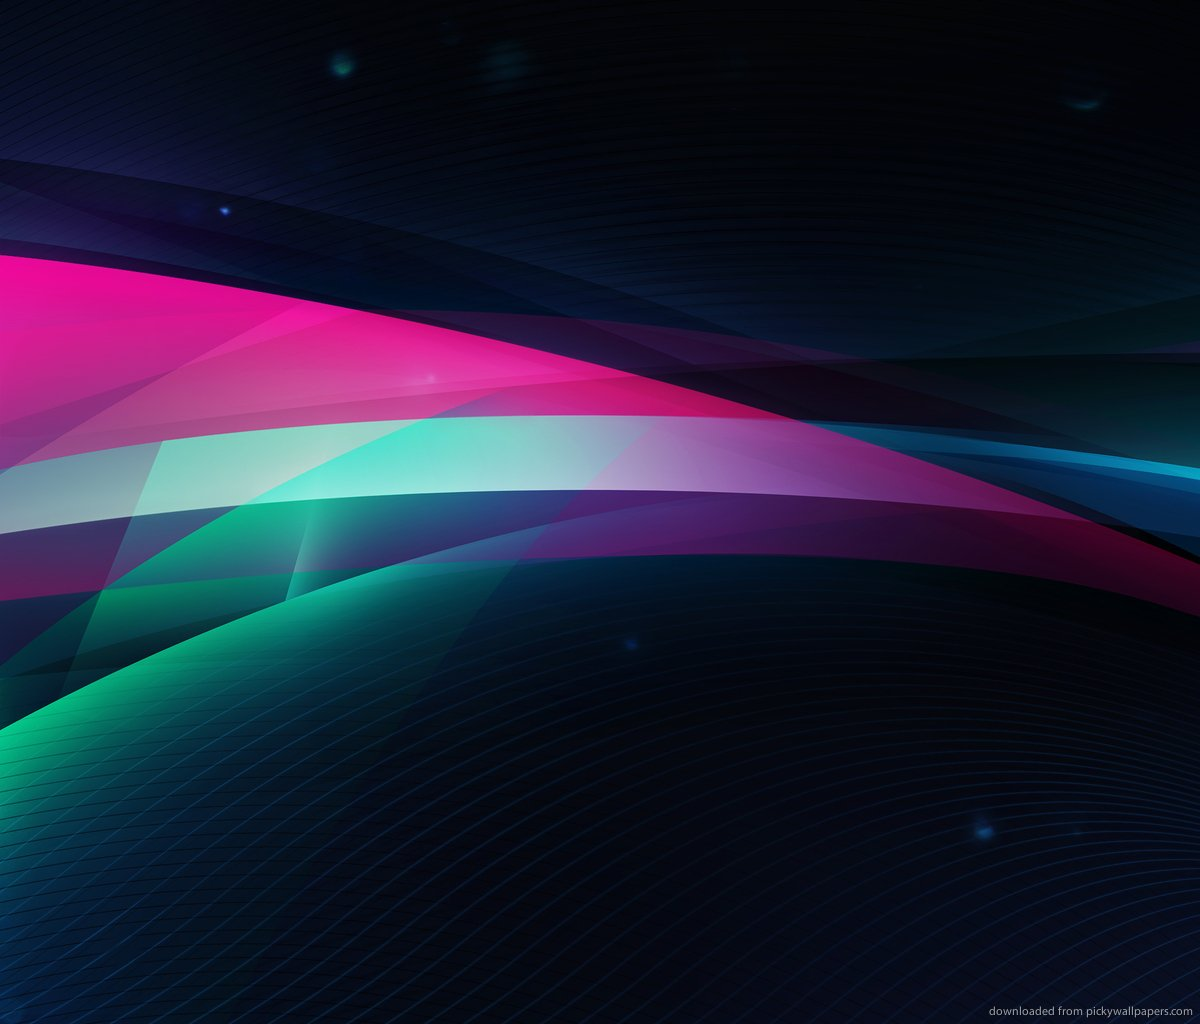 samsung galaxy tab 10.1 wallpapers, pc samsung galaxy tab 10.1